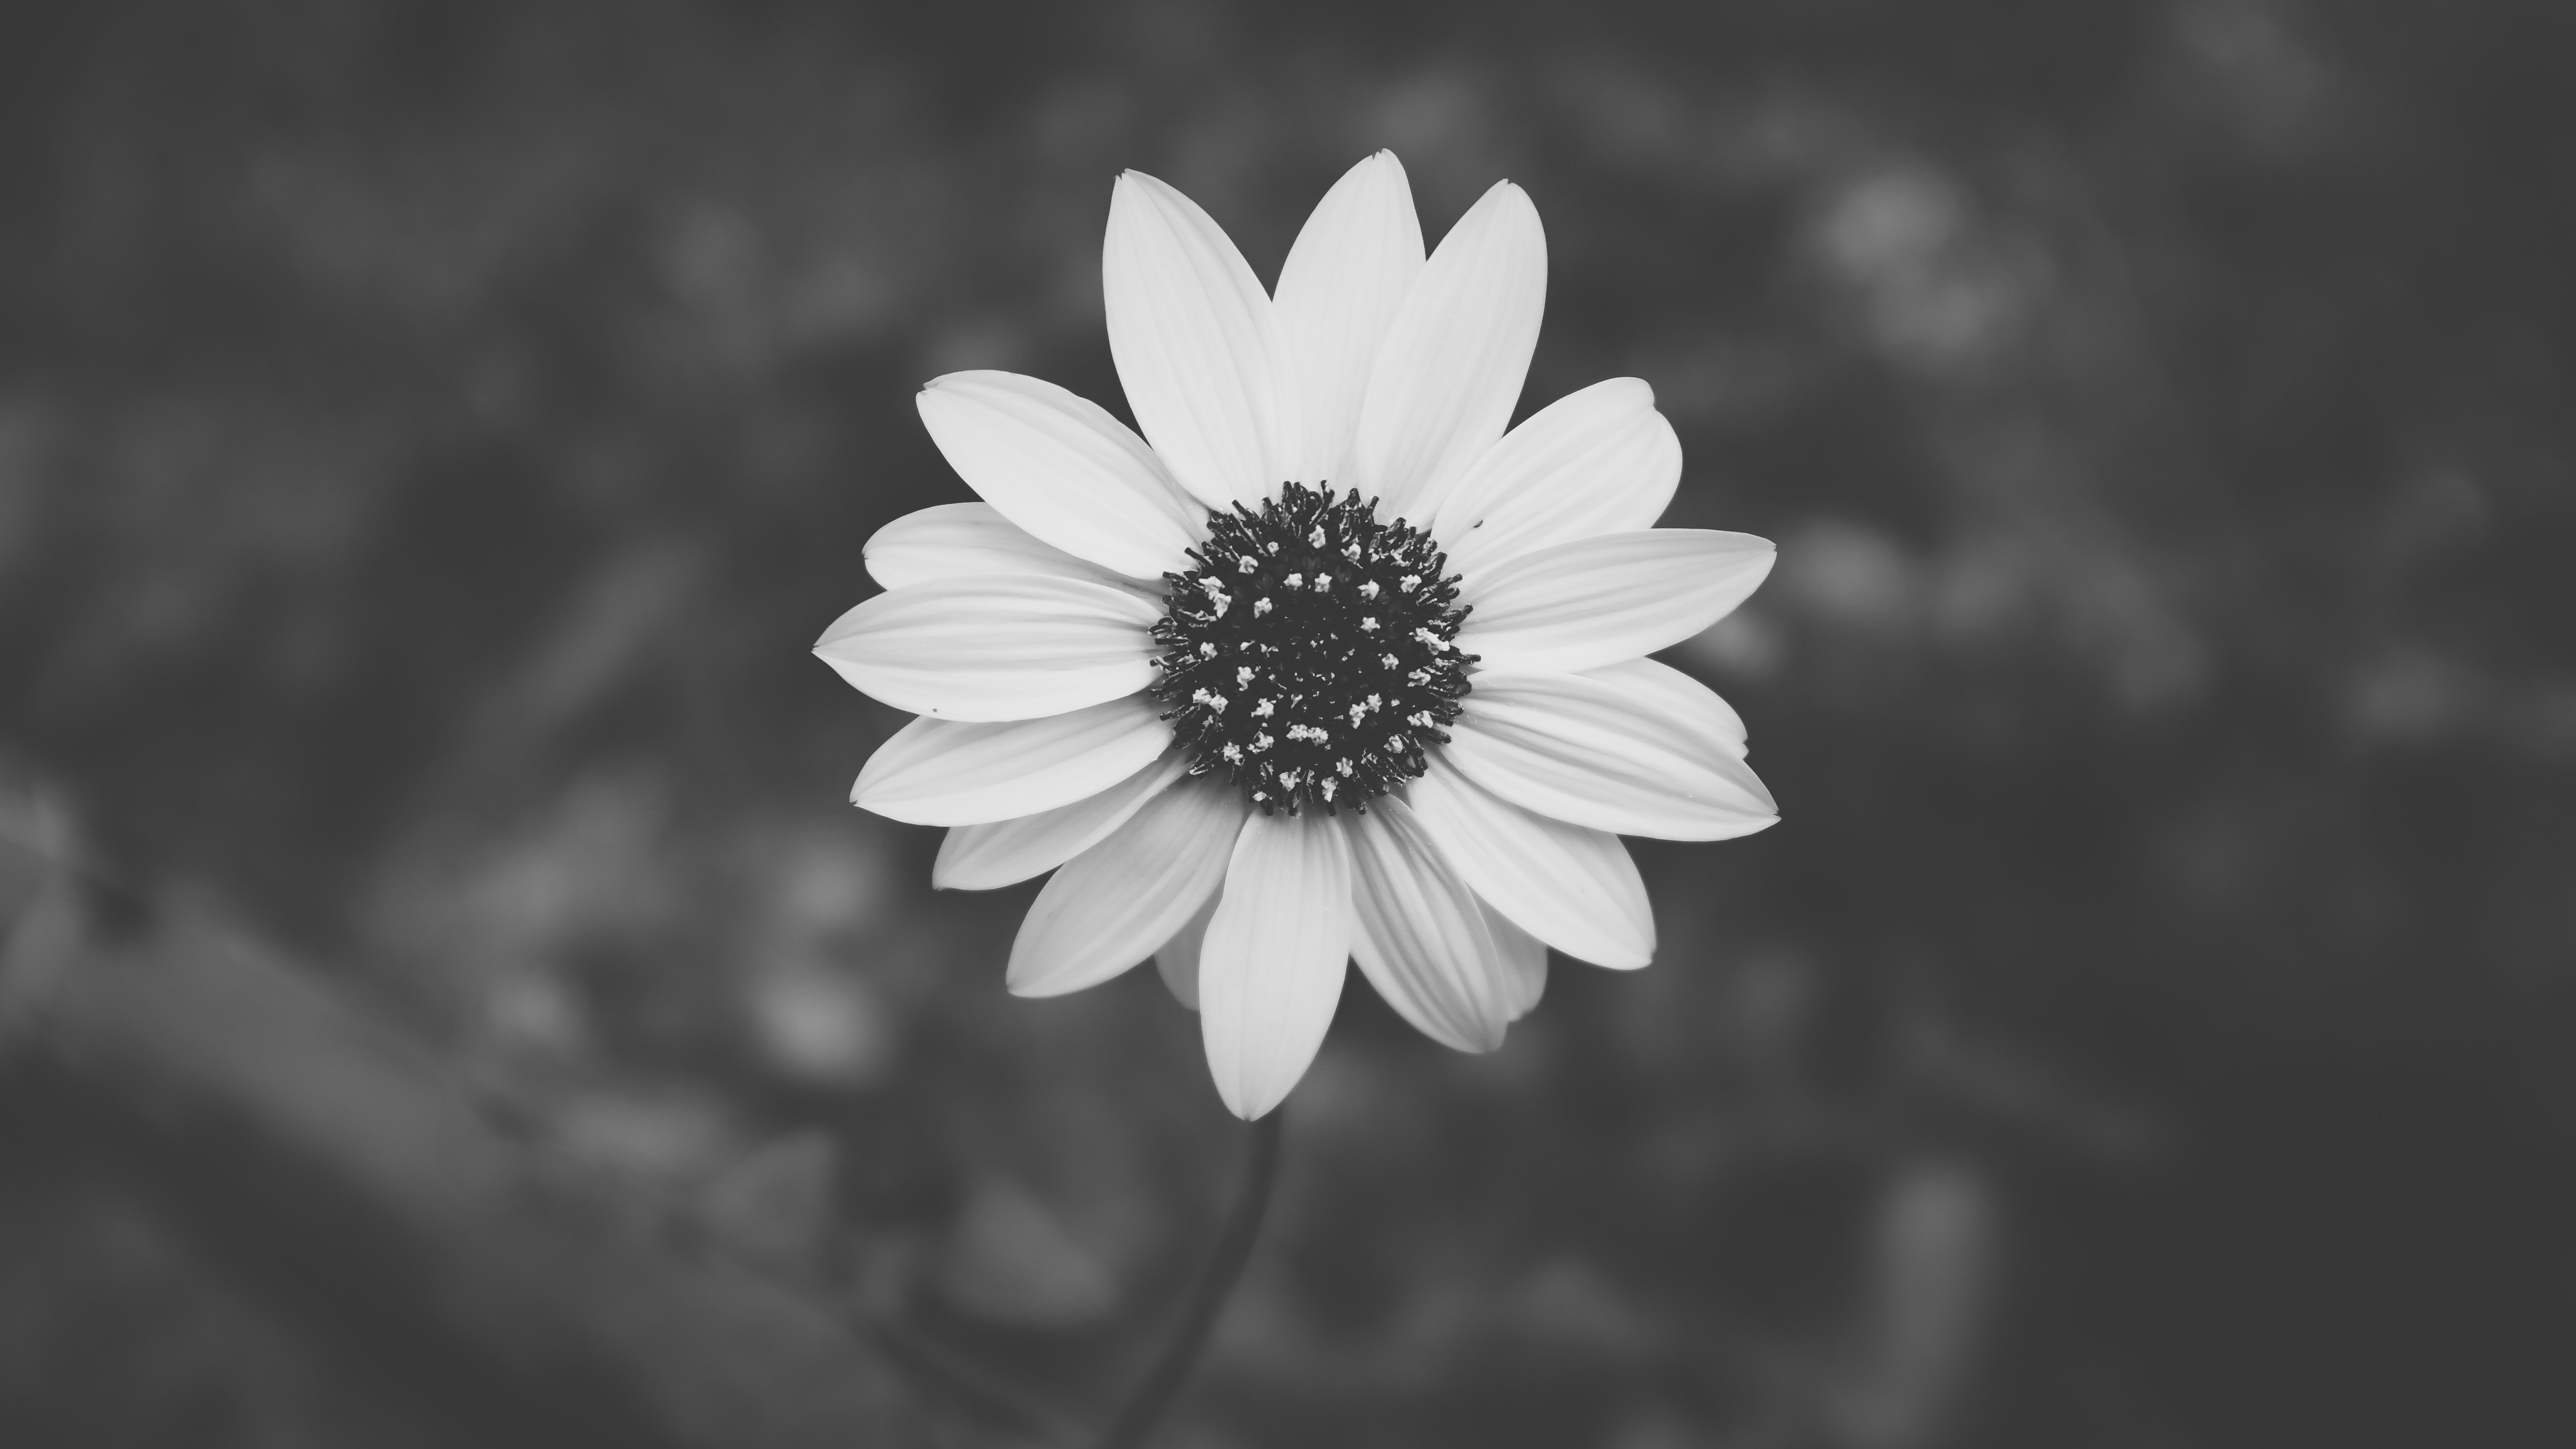 grayscale photography of flower